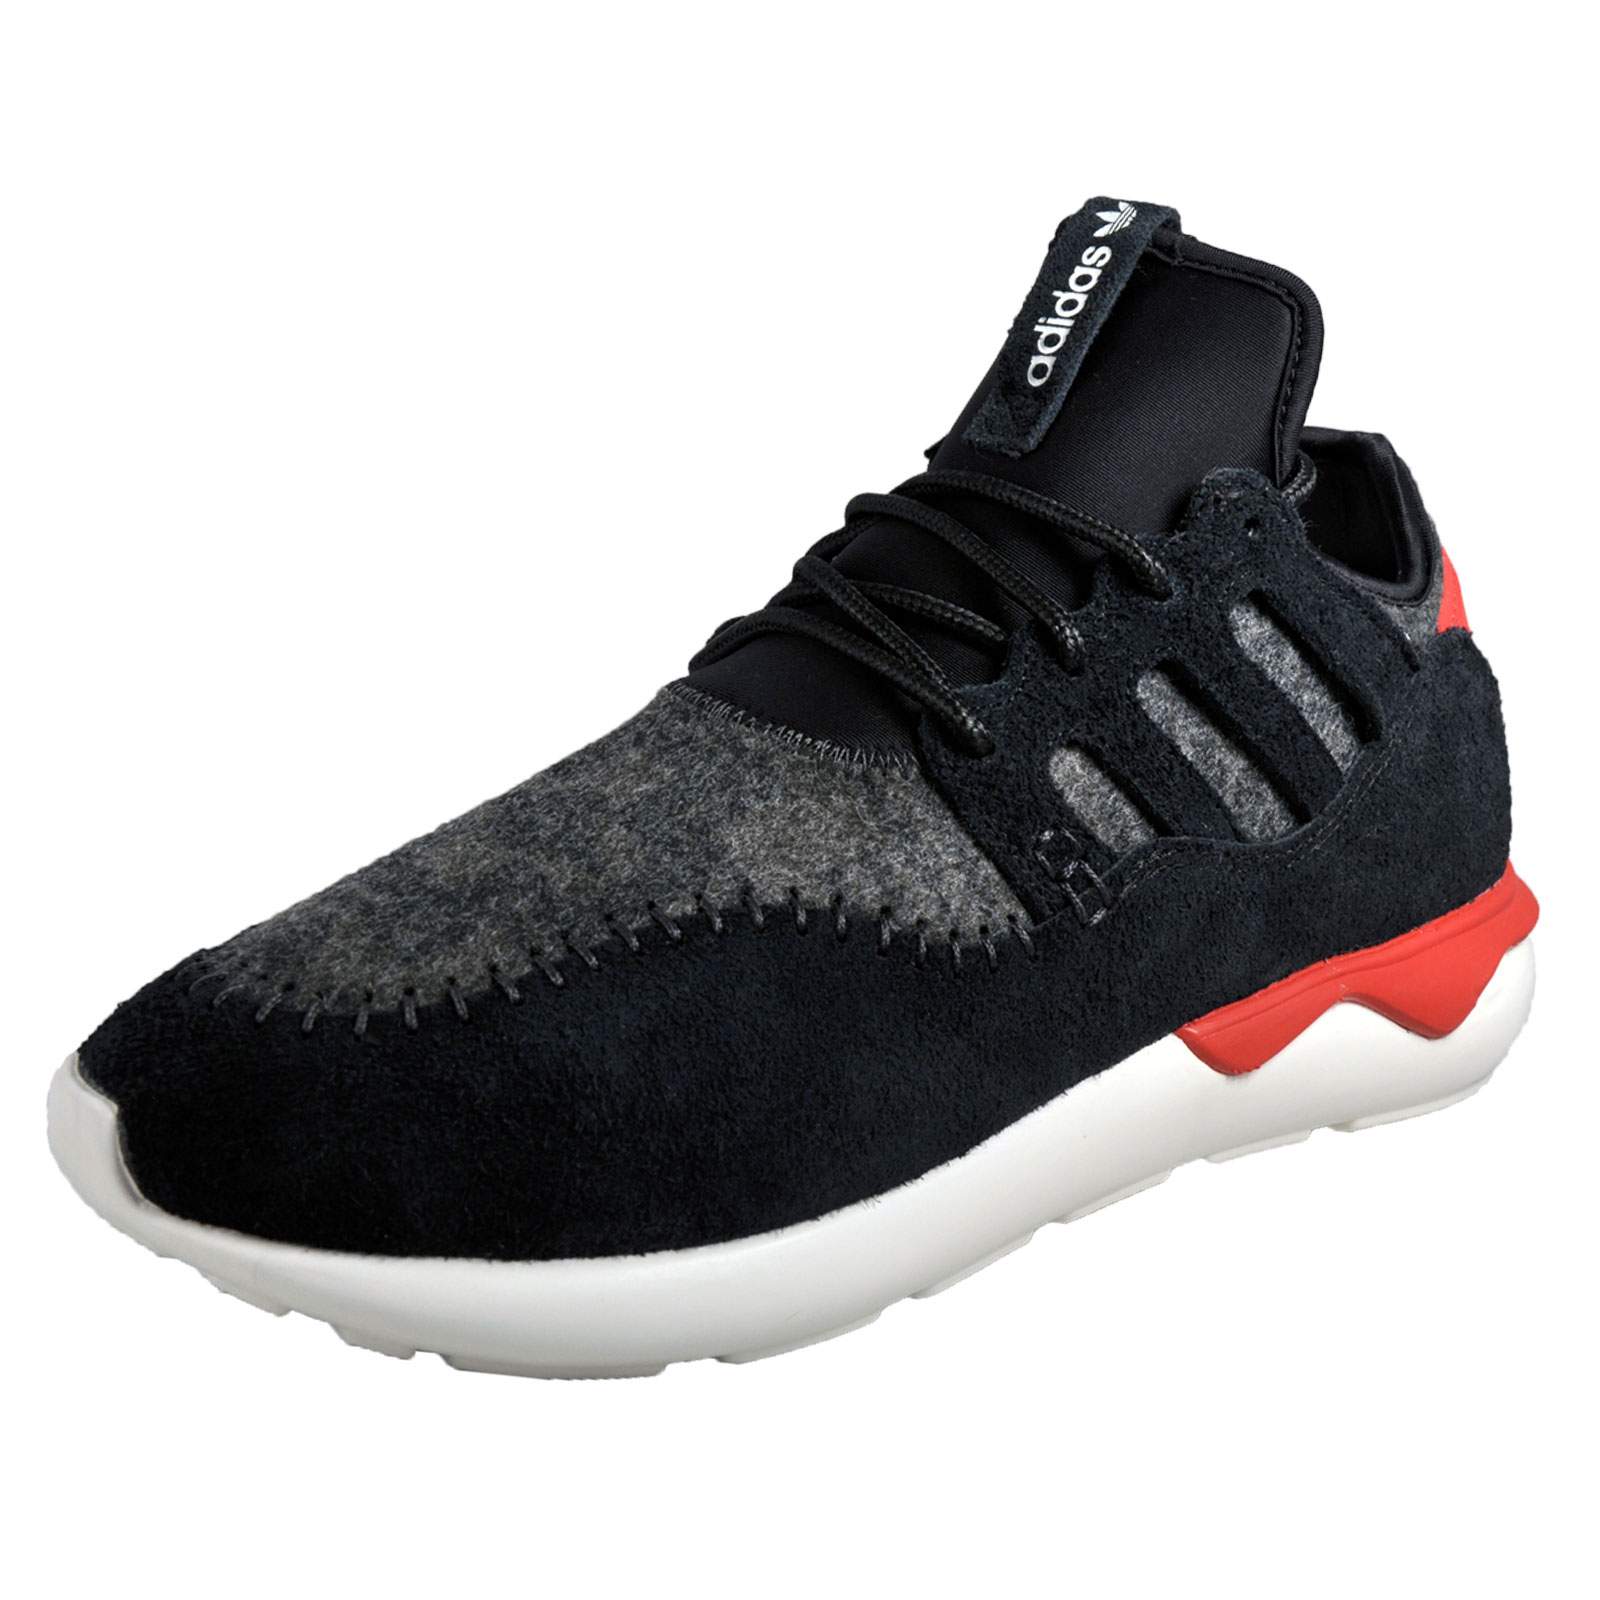 38bea2f493b9cf Details about Adidas Originals Tubular Moc Runner Mens Suede Gym Running  Casual Trainers Black